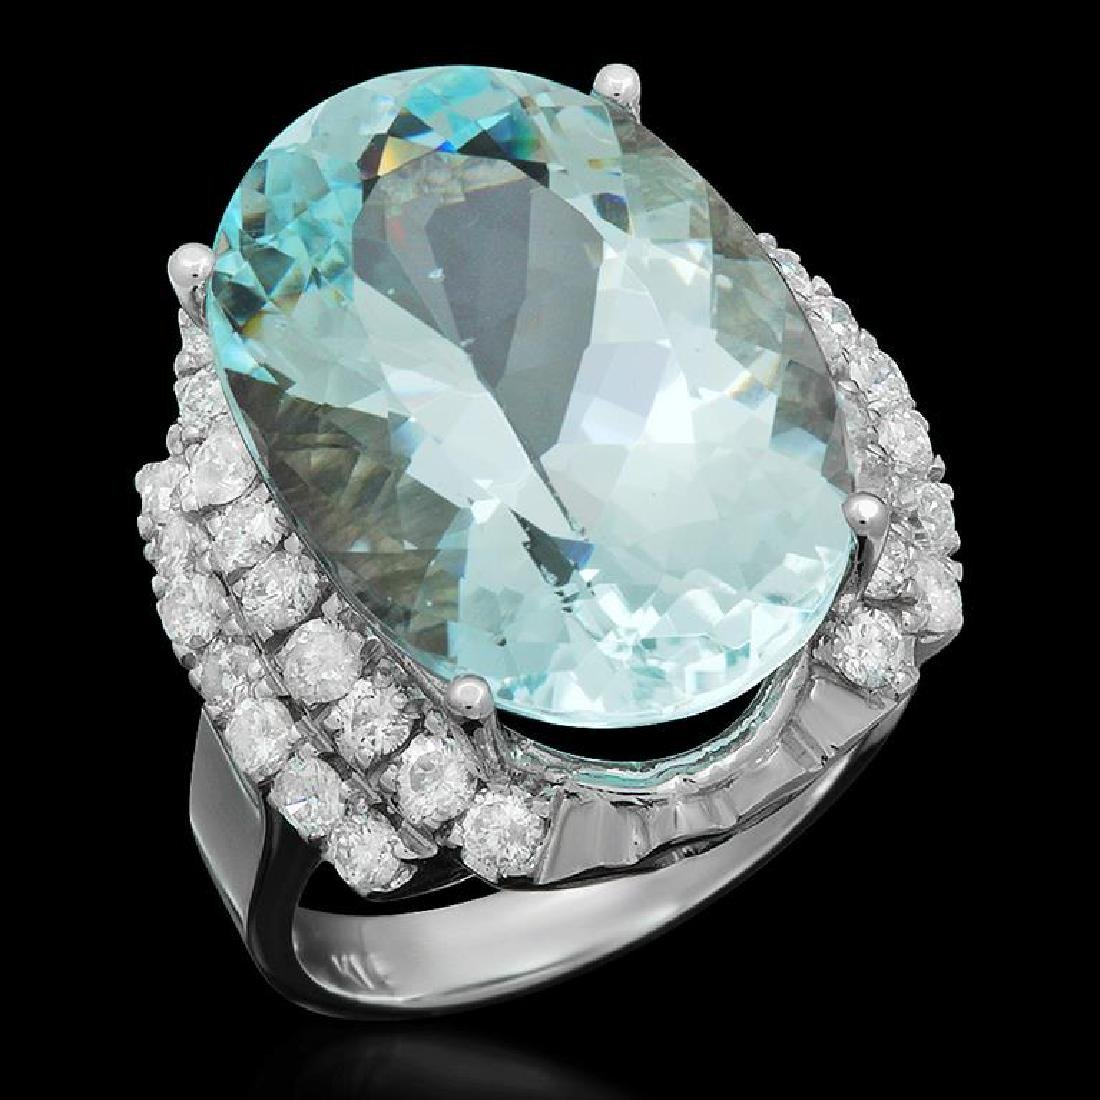 14K Gold 14.95ct Aquamarine 1.17ct Diamond Ring